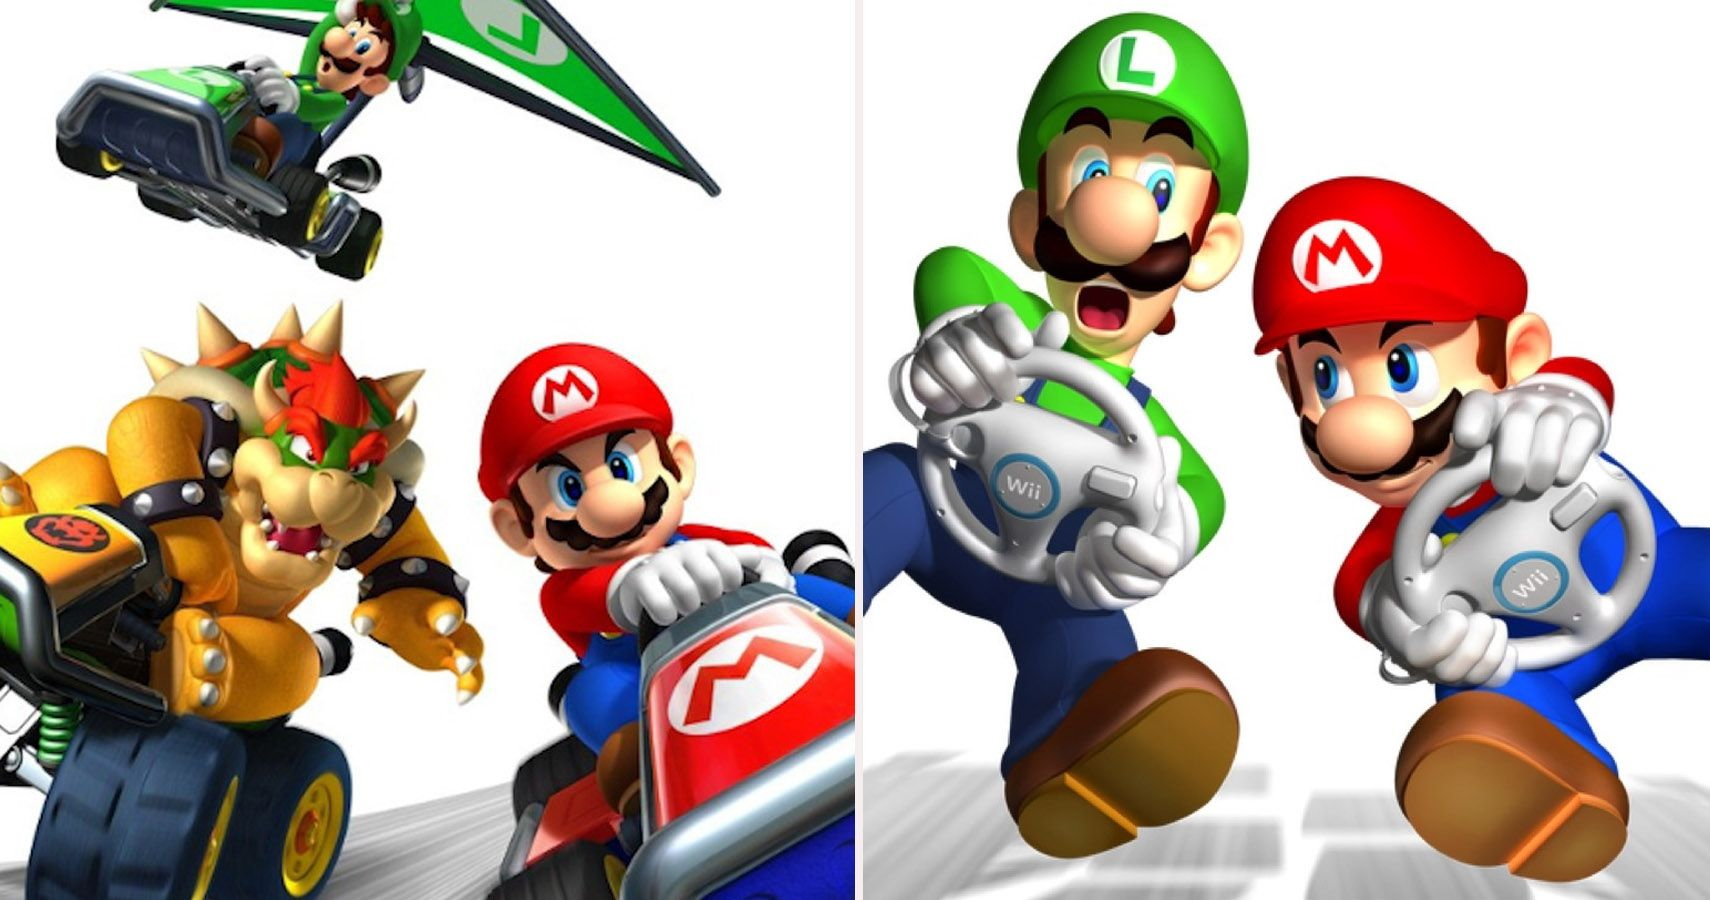 Mario Kart Every Game Ranked According To Metacritic